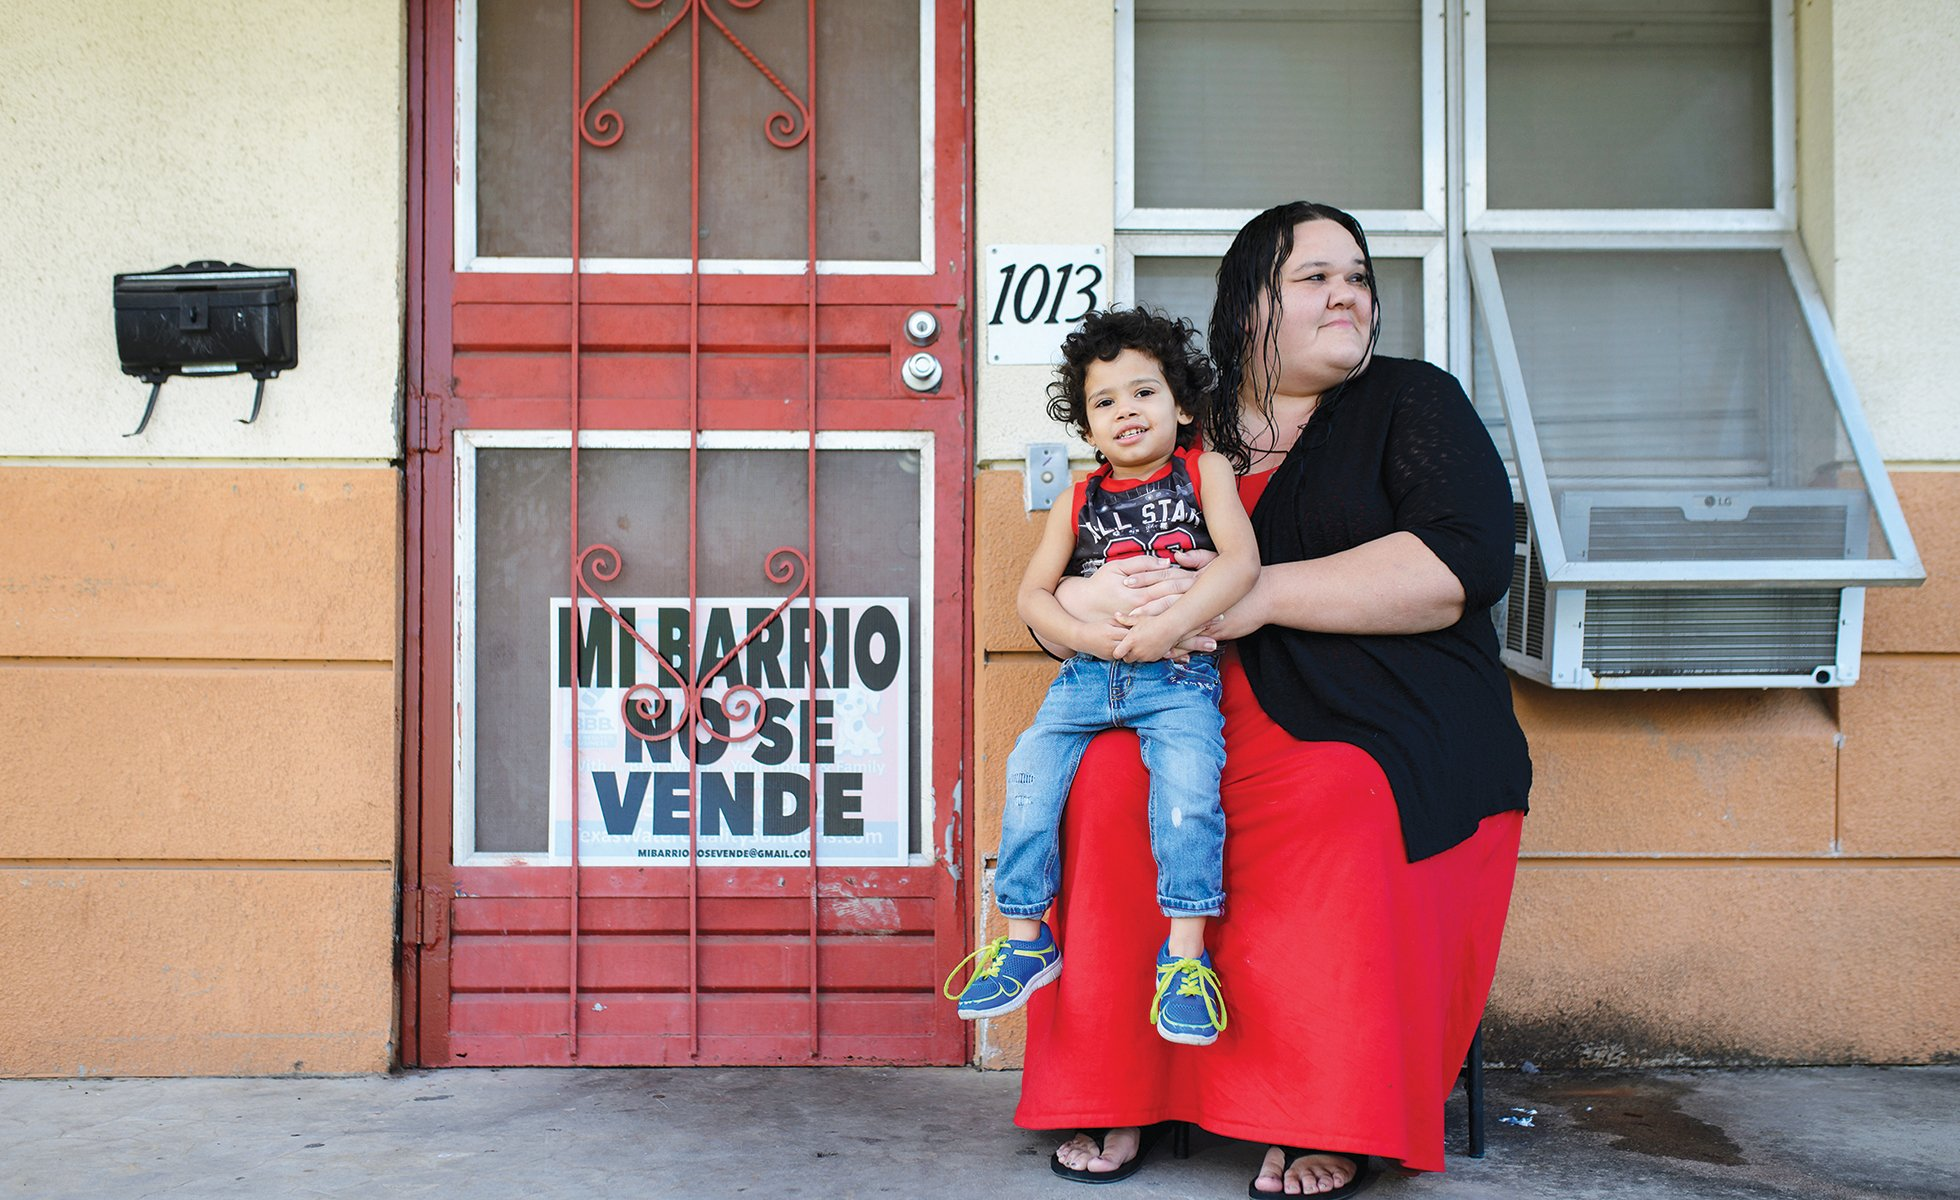 Kayla Miranda, who has lived at Alazán-Apache Courts since 2017, waits with her nephew De'Andre for her kids to get home from school.